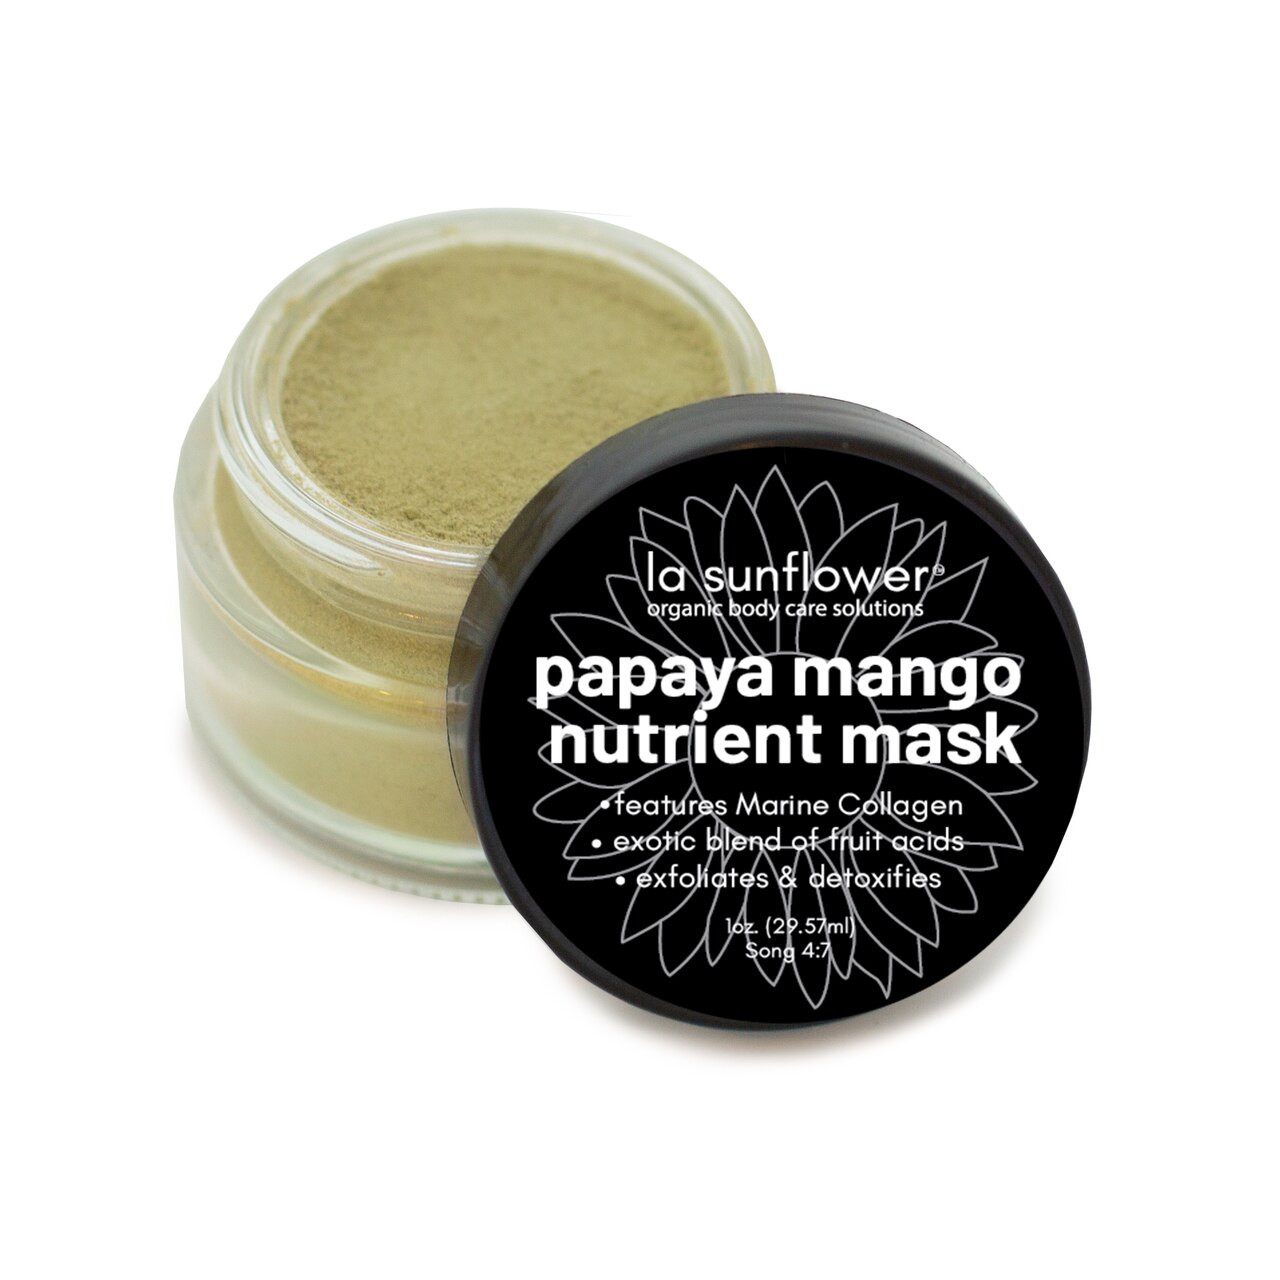 Papaya Mango Nutrient Mask